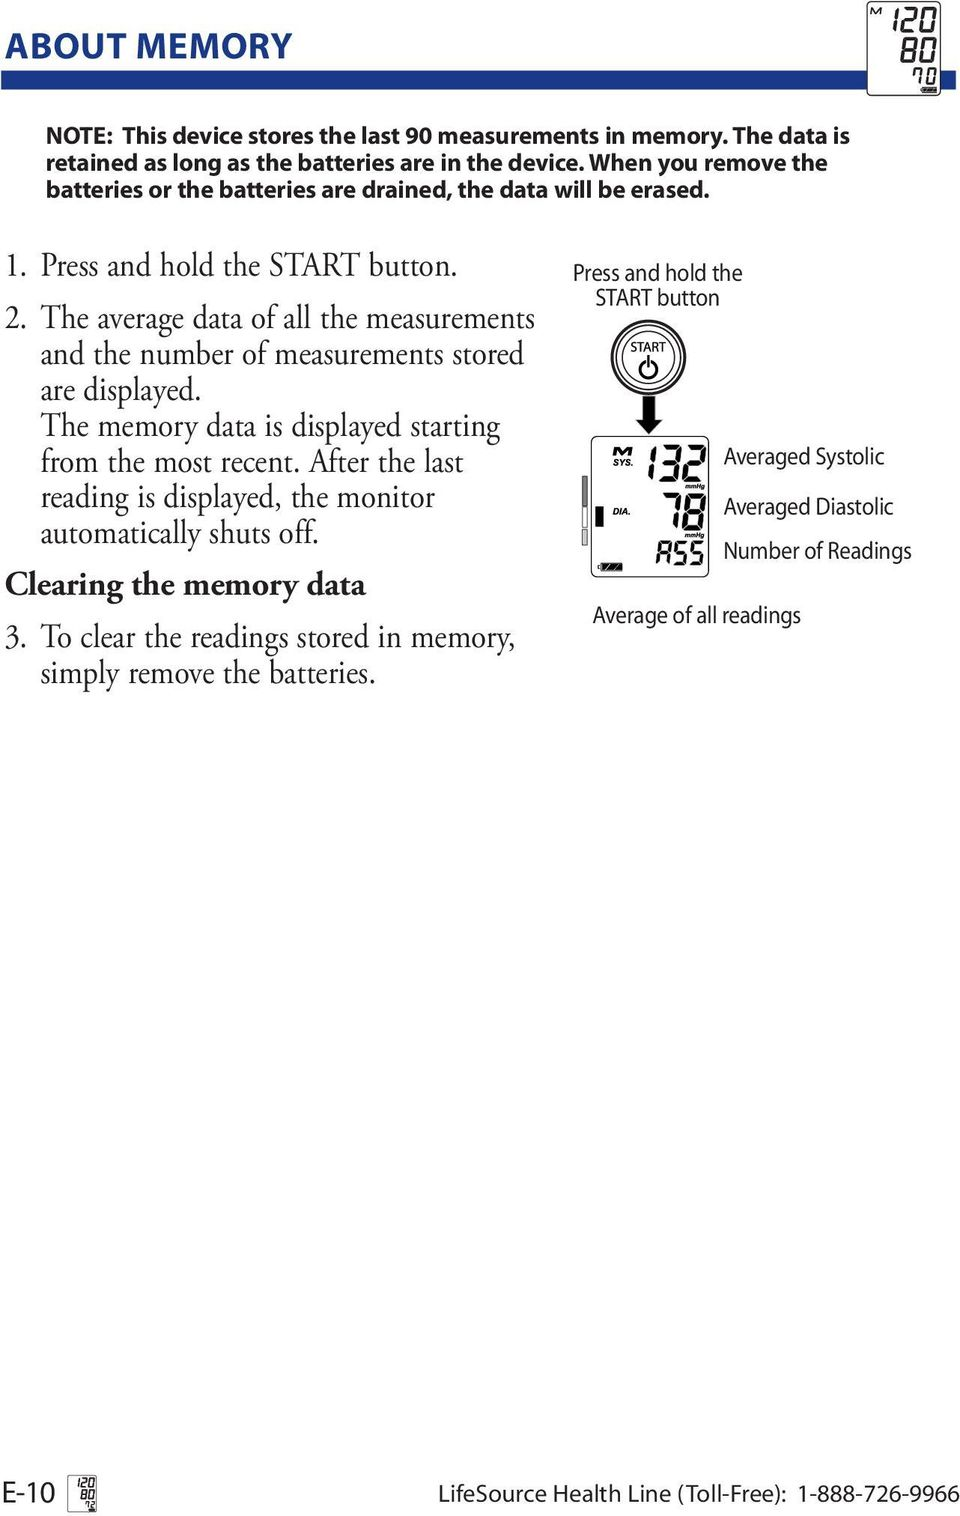 The average data of all the measurements and the number of measurements stored are displayed. The memory data is displayed starting from the most recent.